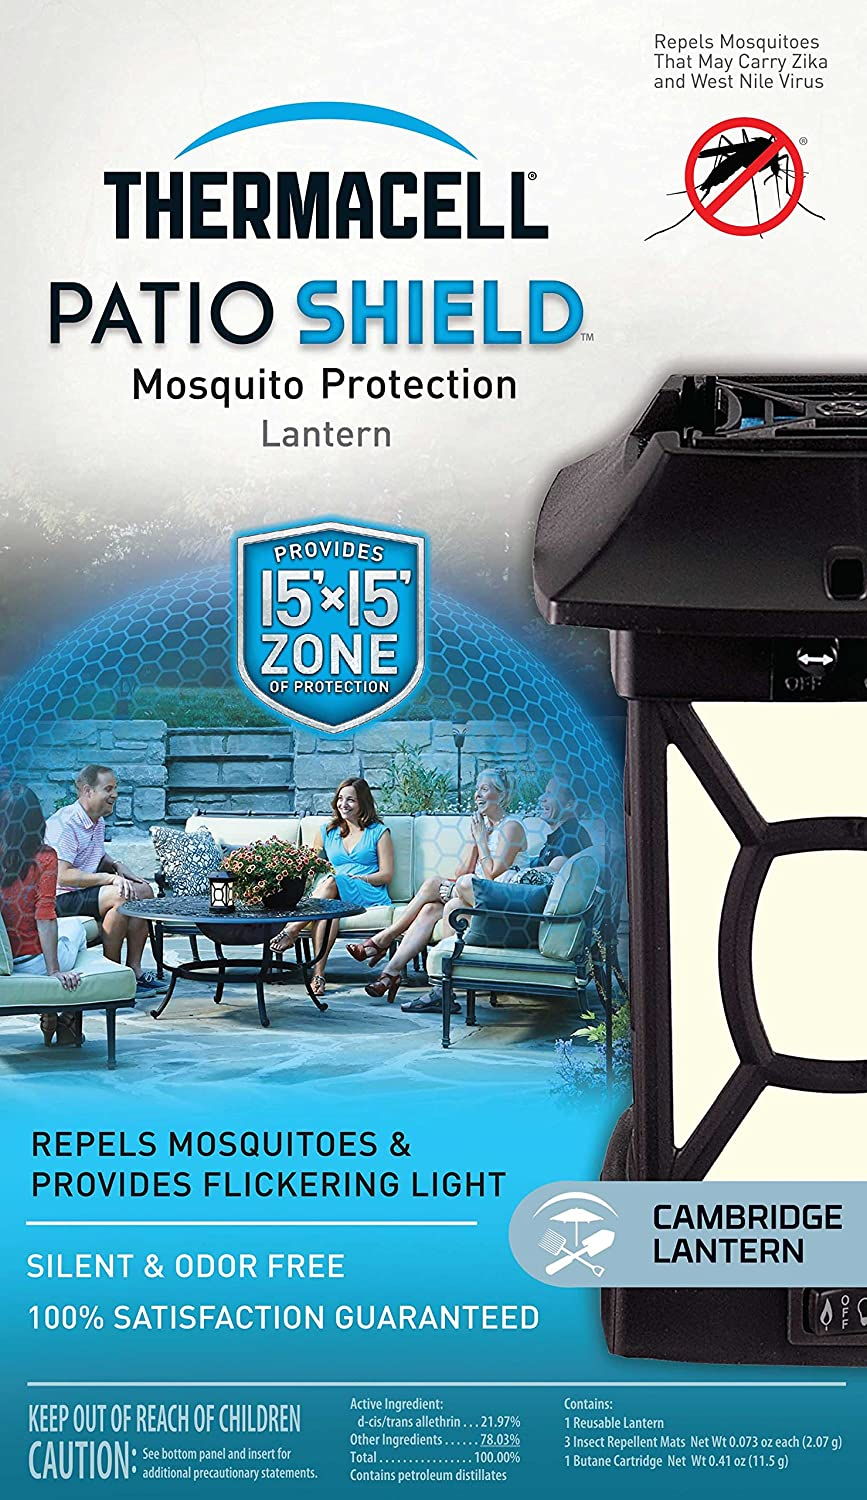 Amazon.com: Thermacell MR-9W Patio Shield Cambridge Mosquito Repeller plus  Lantern: Sports & Outdoors - Amazon.com: Thermacell MR-9W Patio Shield Cambridge Mosquito